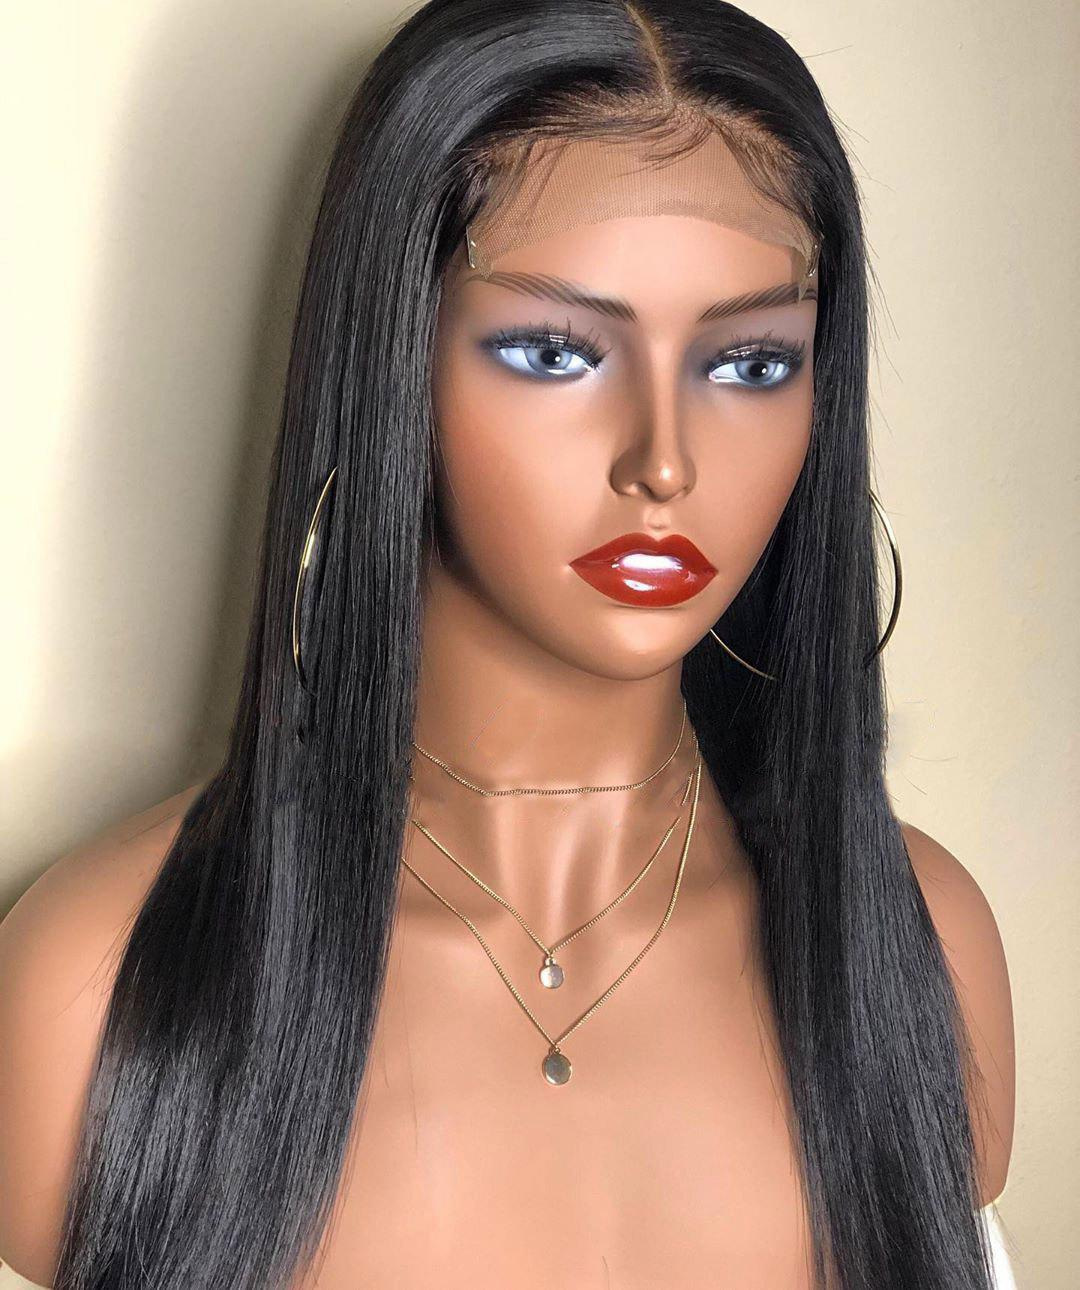 Trendy Orgshine Long Straight Black Color Synthetic Wigs Middle Part Wig 24inch